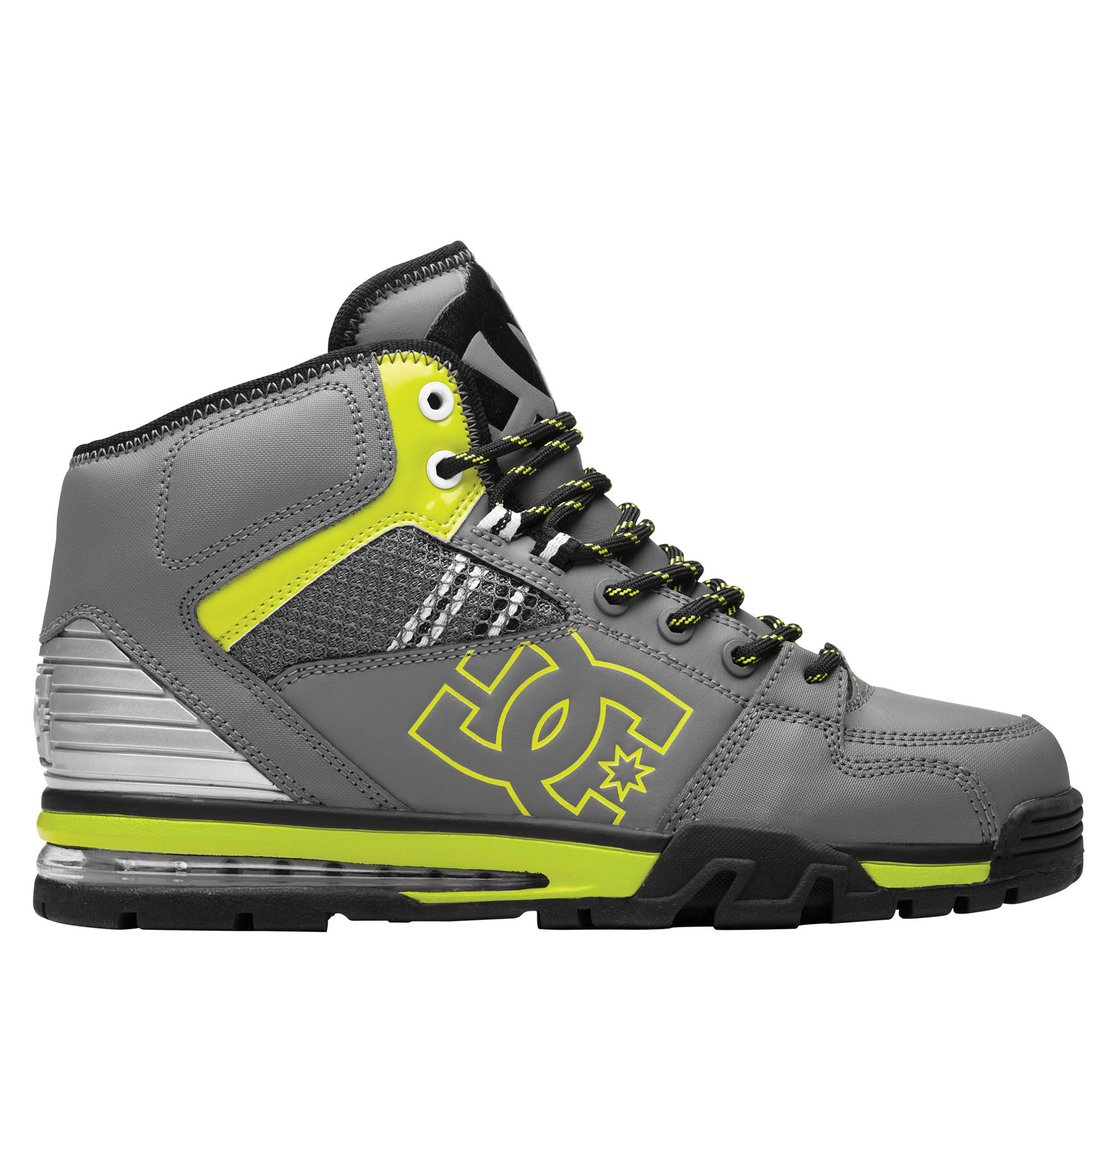 9292089ddfe7 0 Men s Versatile High Water-Resistant Shoes 302397 DC Shoes